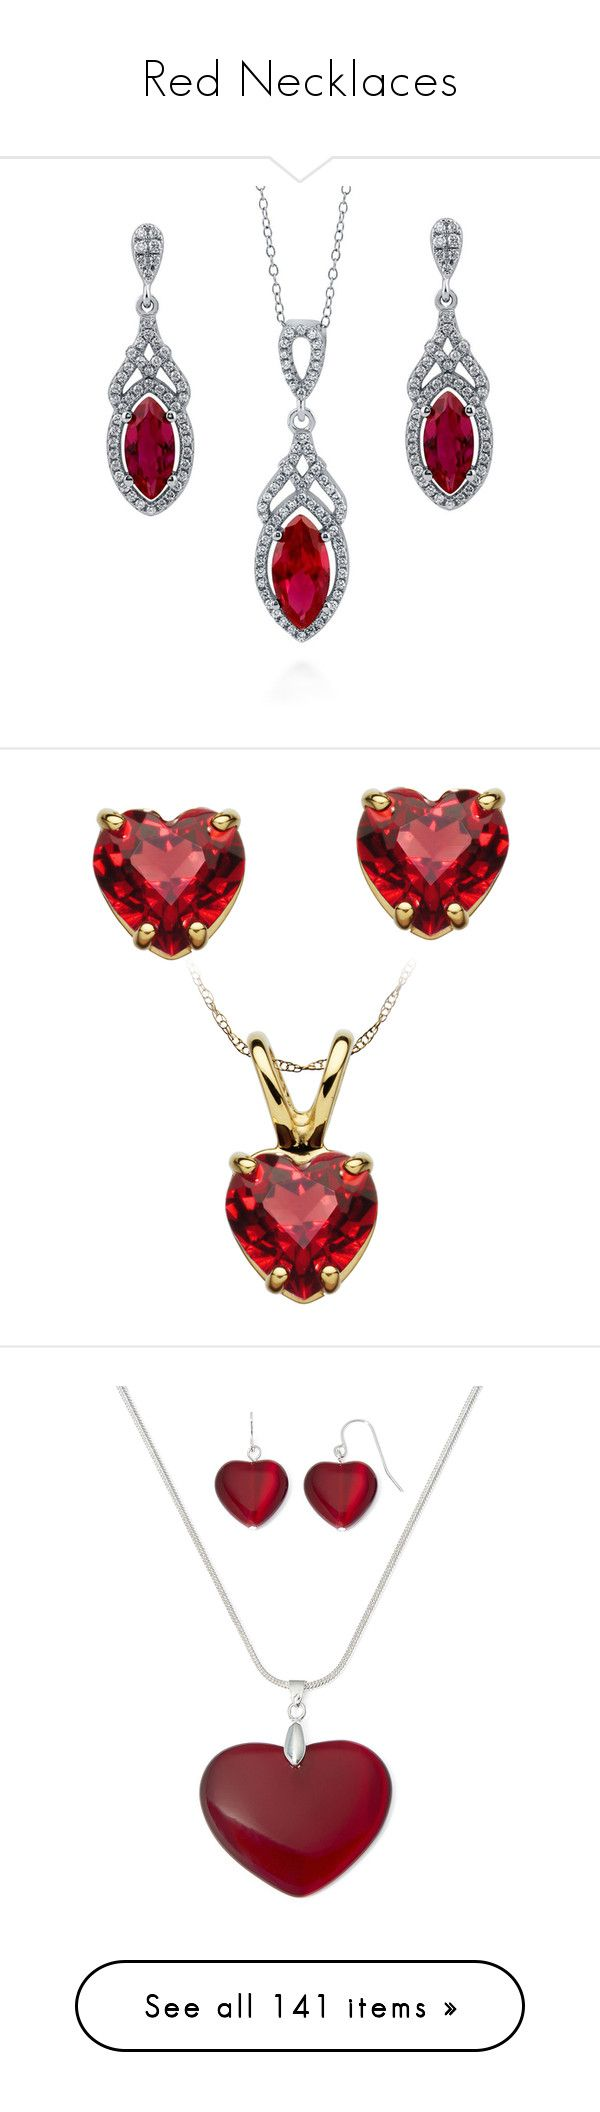 """""""Red Necklaces"""" by megsjessd99 ❤ liked on Polyvore featuring jewelry, earrings, necklaces, jewelry sets, sets, women's accessories, cubic zirconia pendant necklace, ruby earrings, chain pendants and cubic zirconia earrings"""